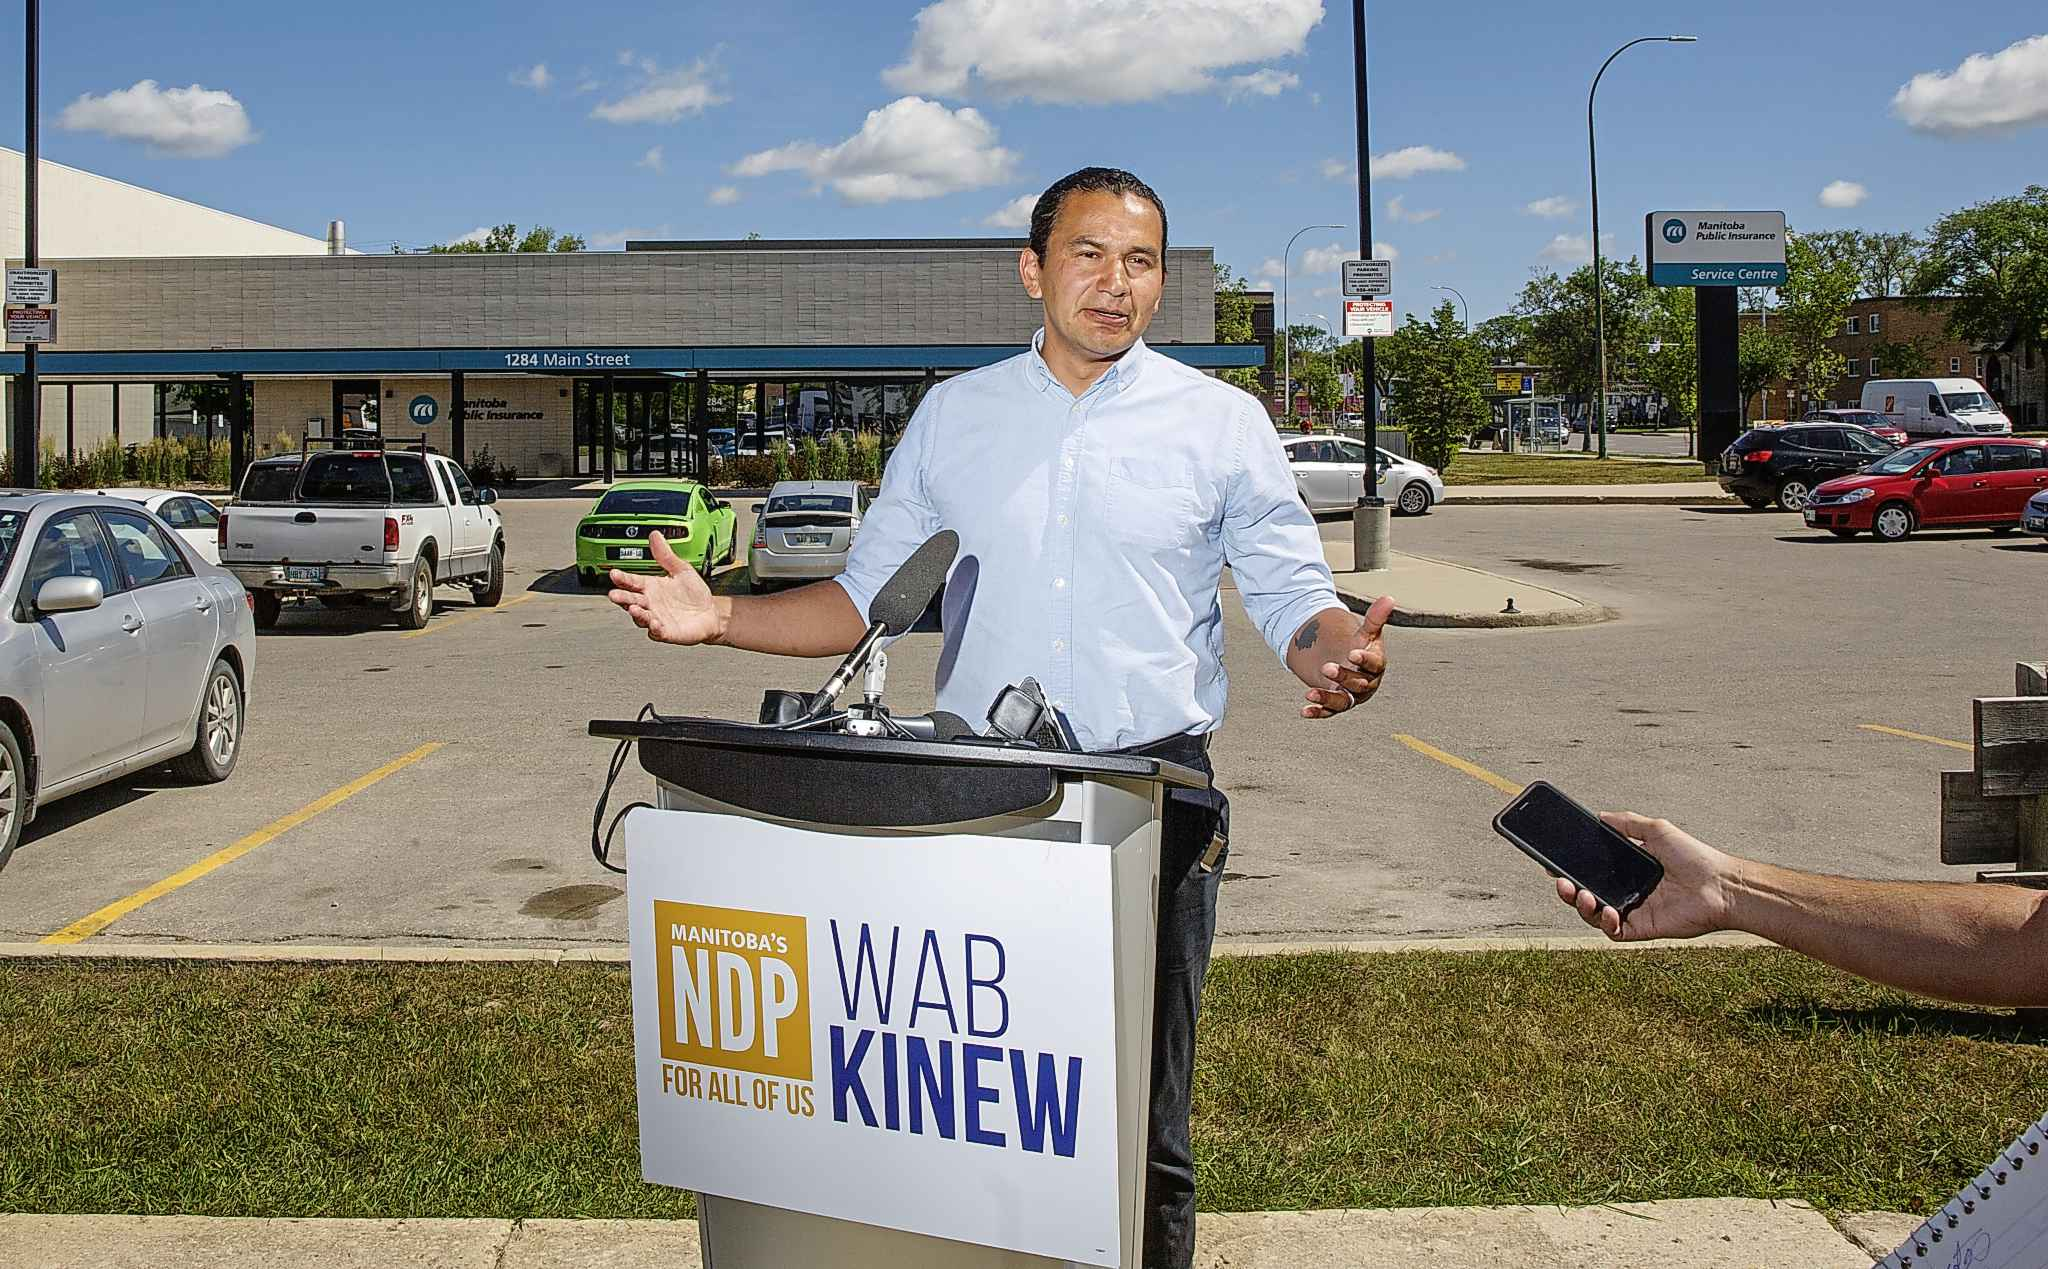 """Wab Kinew, Leader of the Manitoba NDP reveals that the party has discovered through FIPPA information requests that the Conservative government has put together a scenario where MPI """"no longer exists.""""  190705 - Friday, July 05, 2019."""